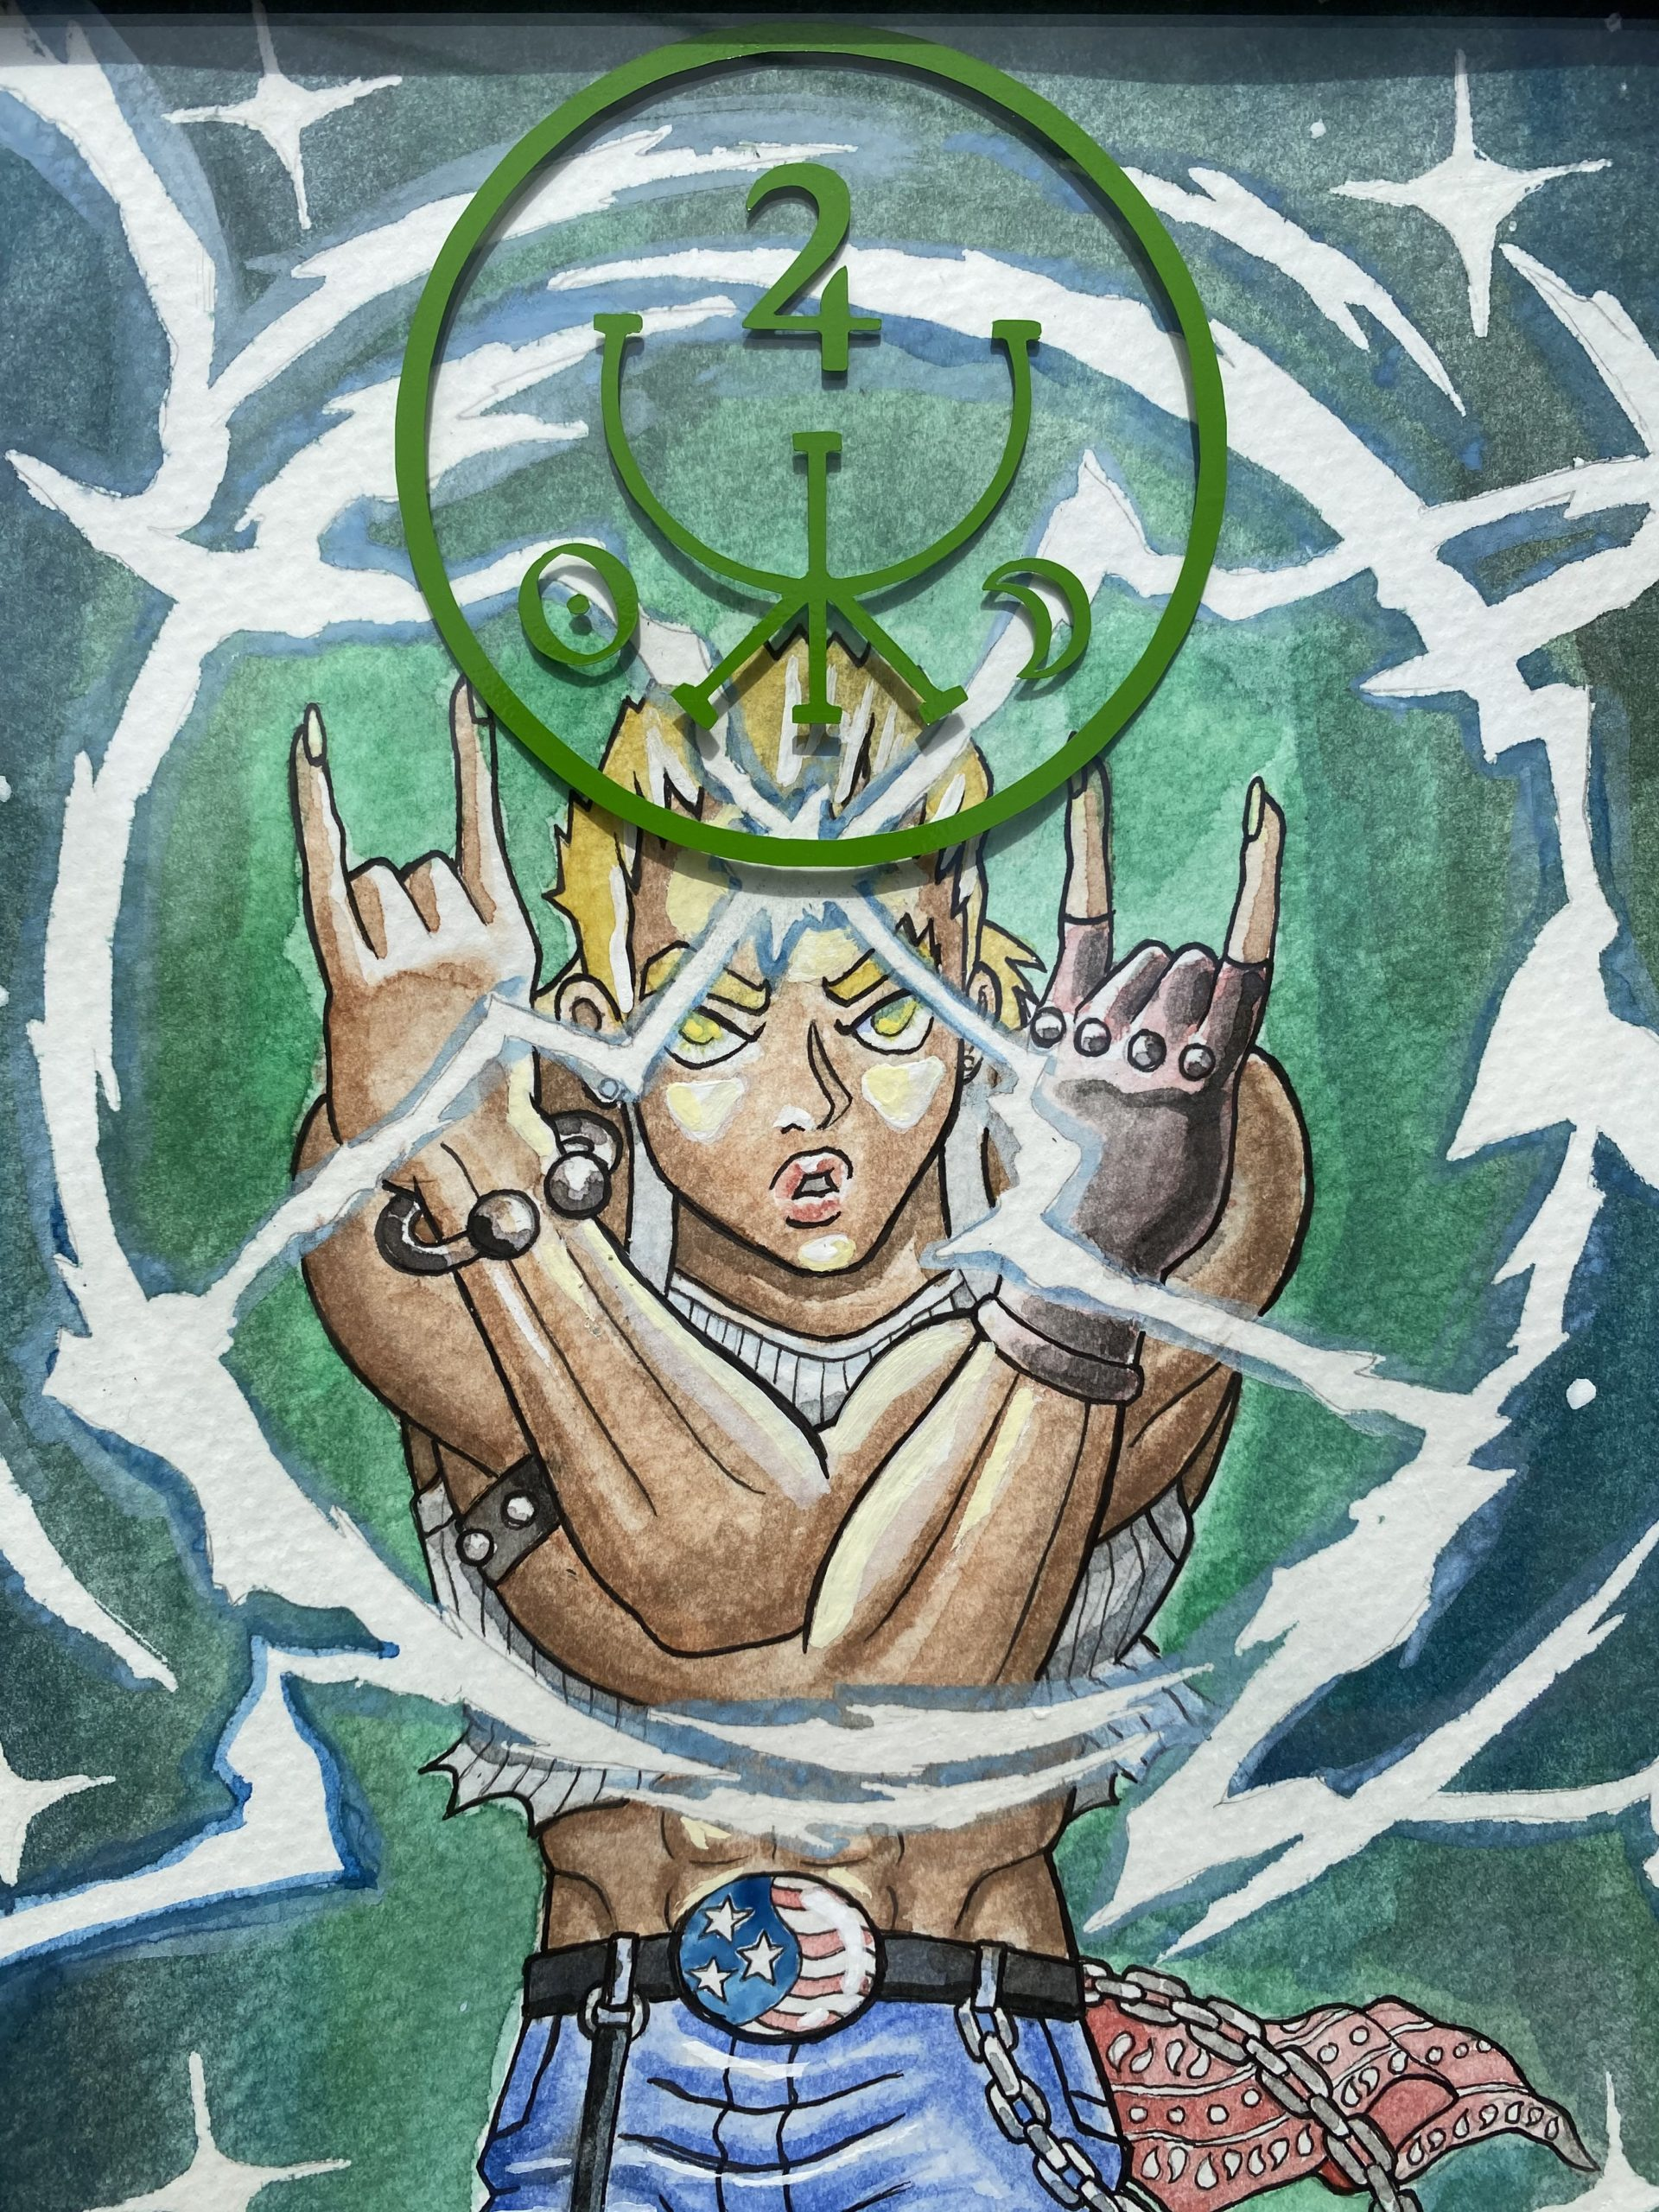 Avery Noyes, VOLT SHOCKING HEAVENLY STORM! (I WISH I COULD HARNESS THAT POWER), 2020. Watercolor, pen, die-cut vinyl, 12x15 inches.